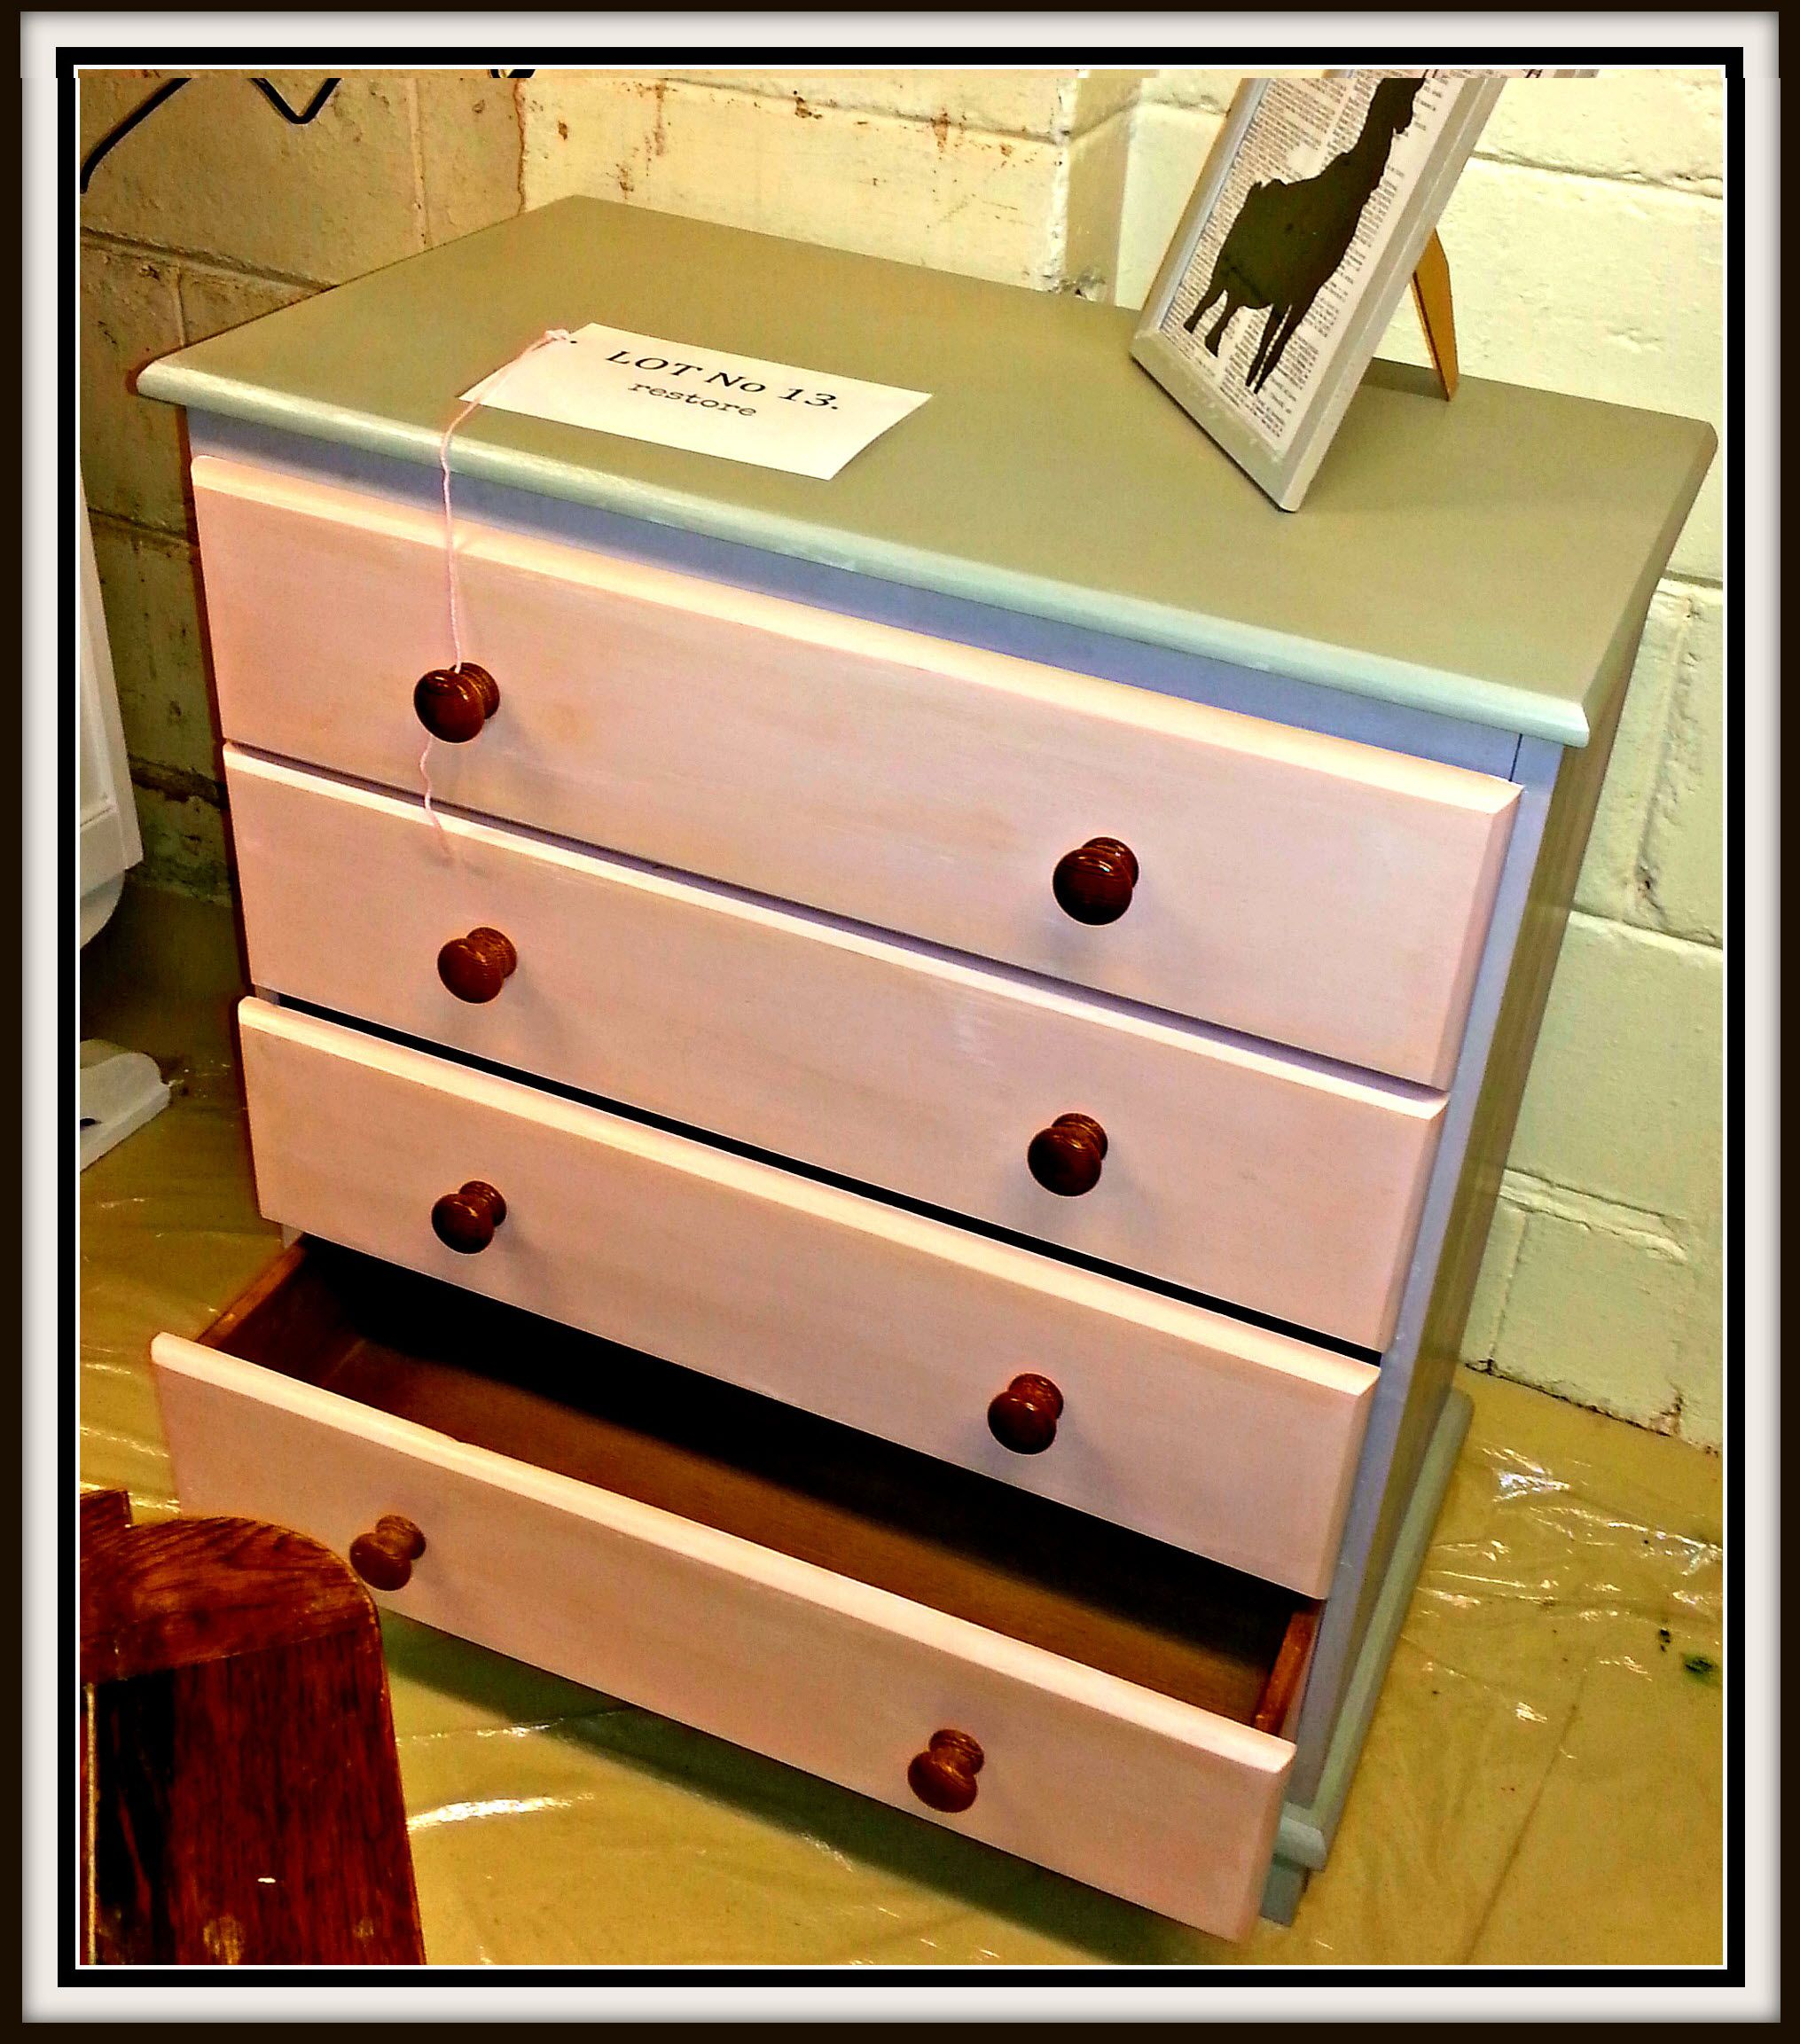 visit our site http://restoreproject.co.uk/ for more information on Painted furniture Southend.Shabby chic furniture Southend that have actually been purposely distressed or matured, is fairly prominent, and you could be wondering how it refers to you.